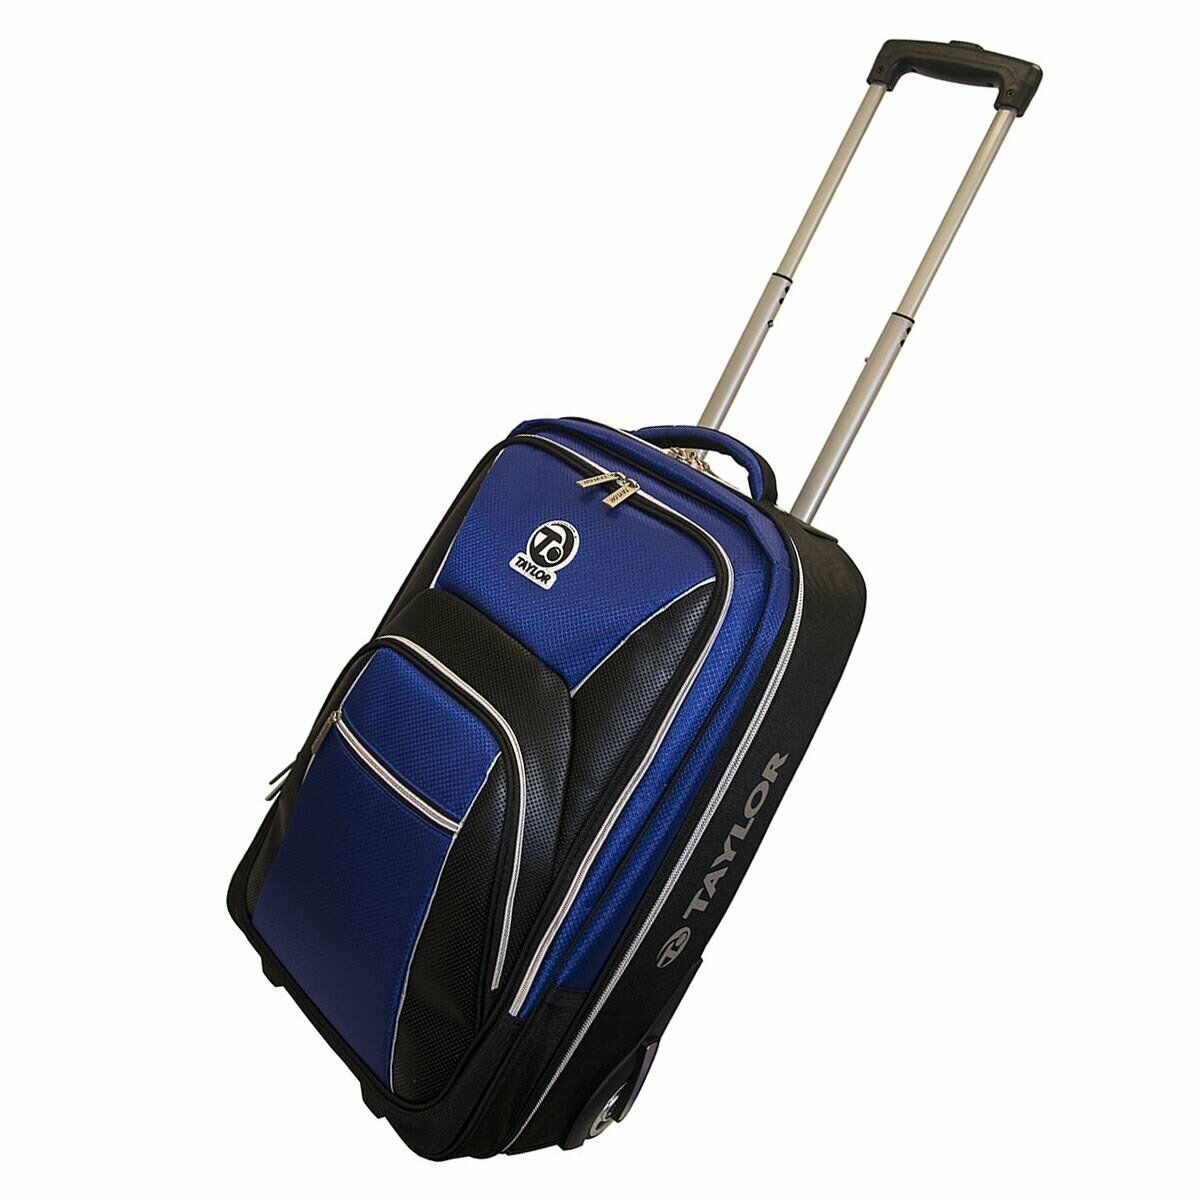 New Thomas Taylor Bowls Grand Tourer Travel Wheel Trolley Bag Unisex rrp